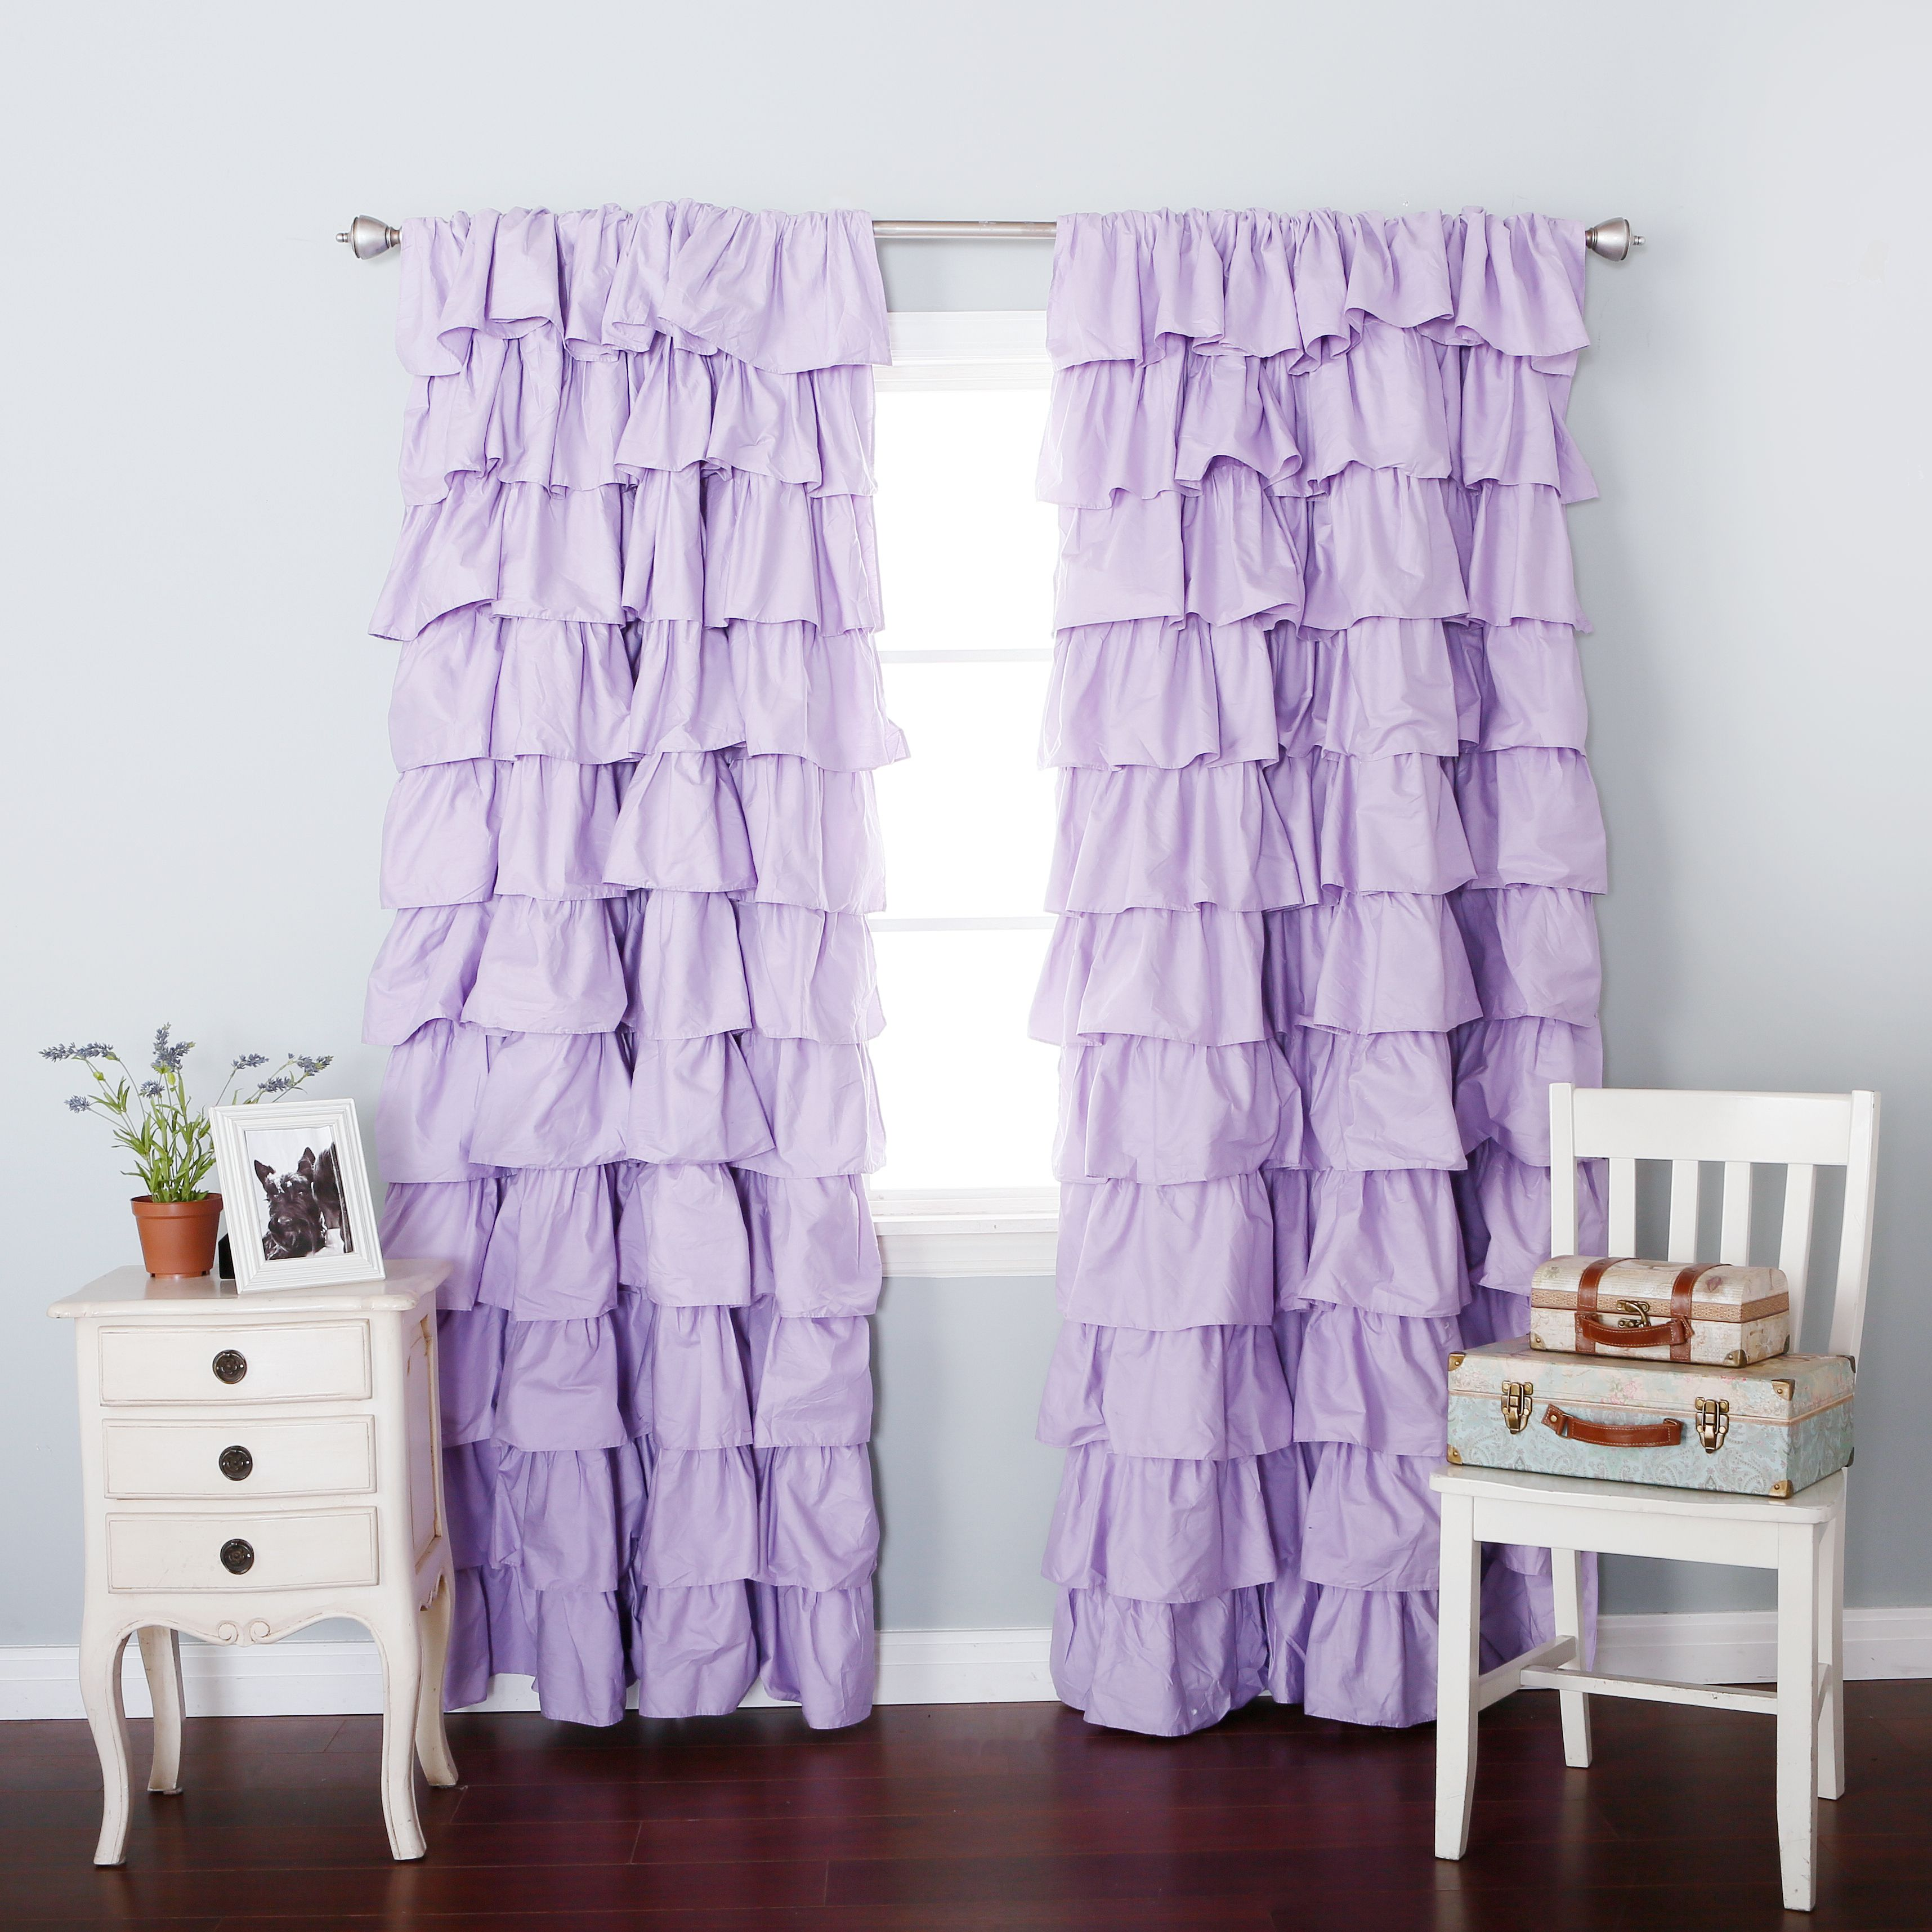 Ruffle curtains - Lilac Blackout Large Waterfall Ruffle Curtain Soft And Feminine Ruffles Are A Gorgeous Addition To Any